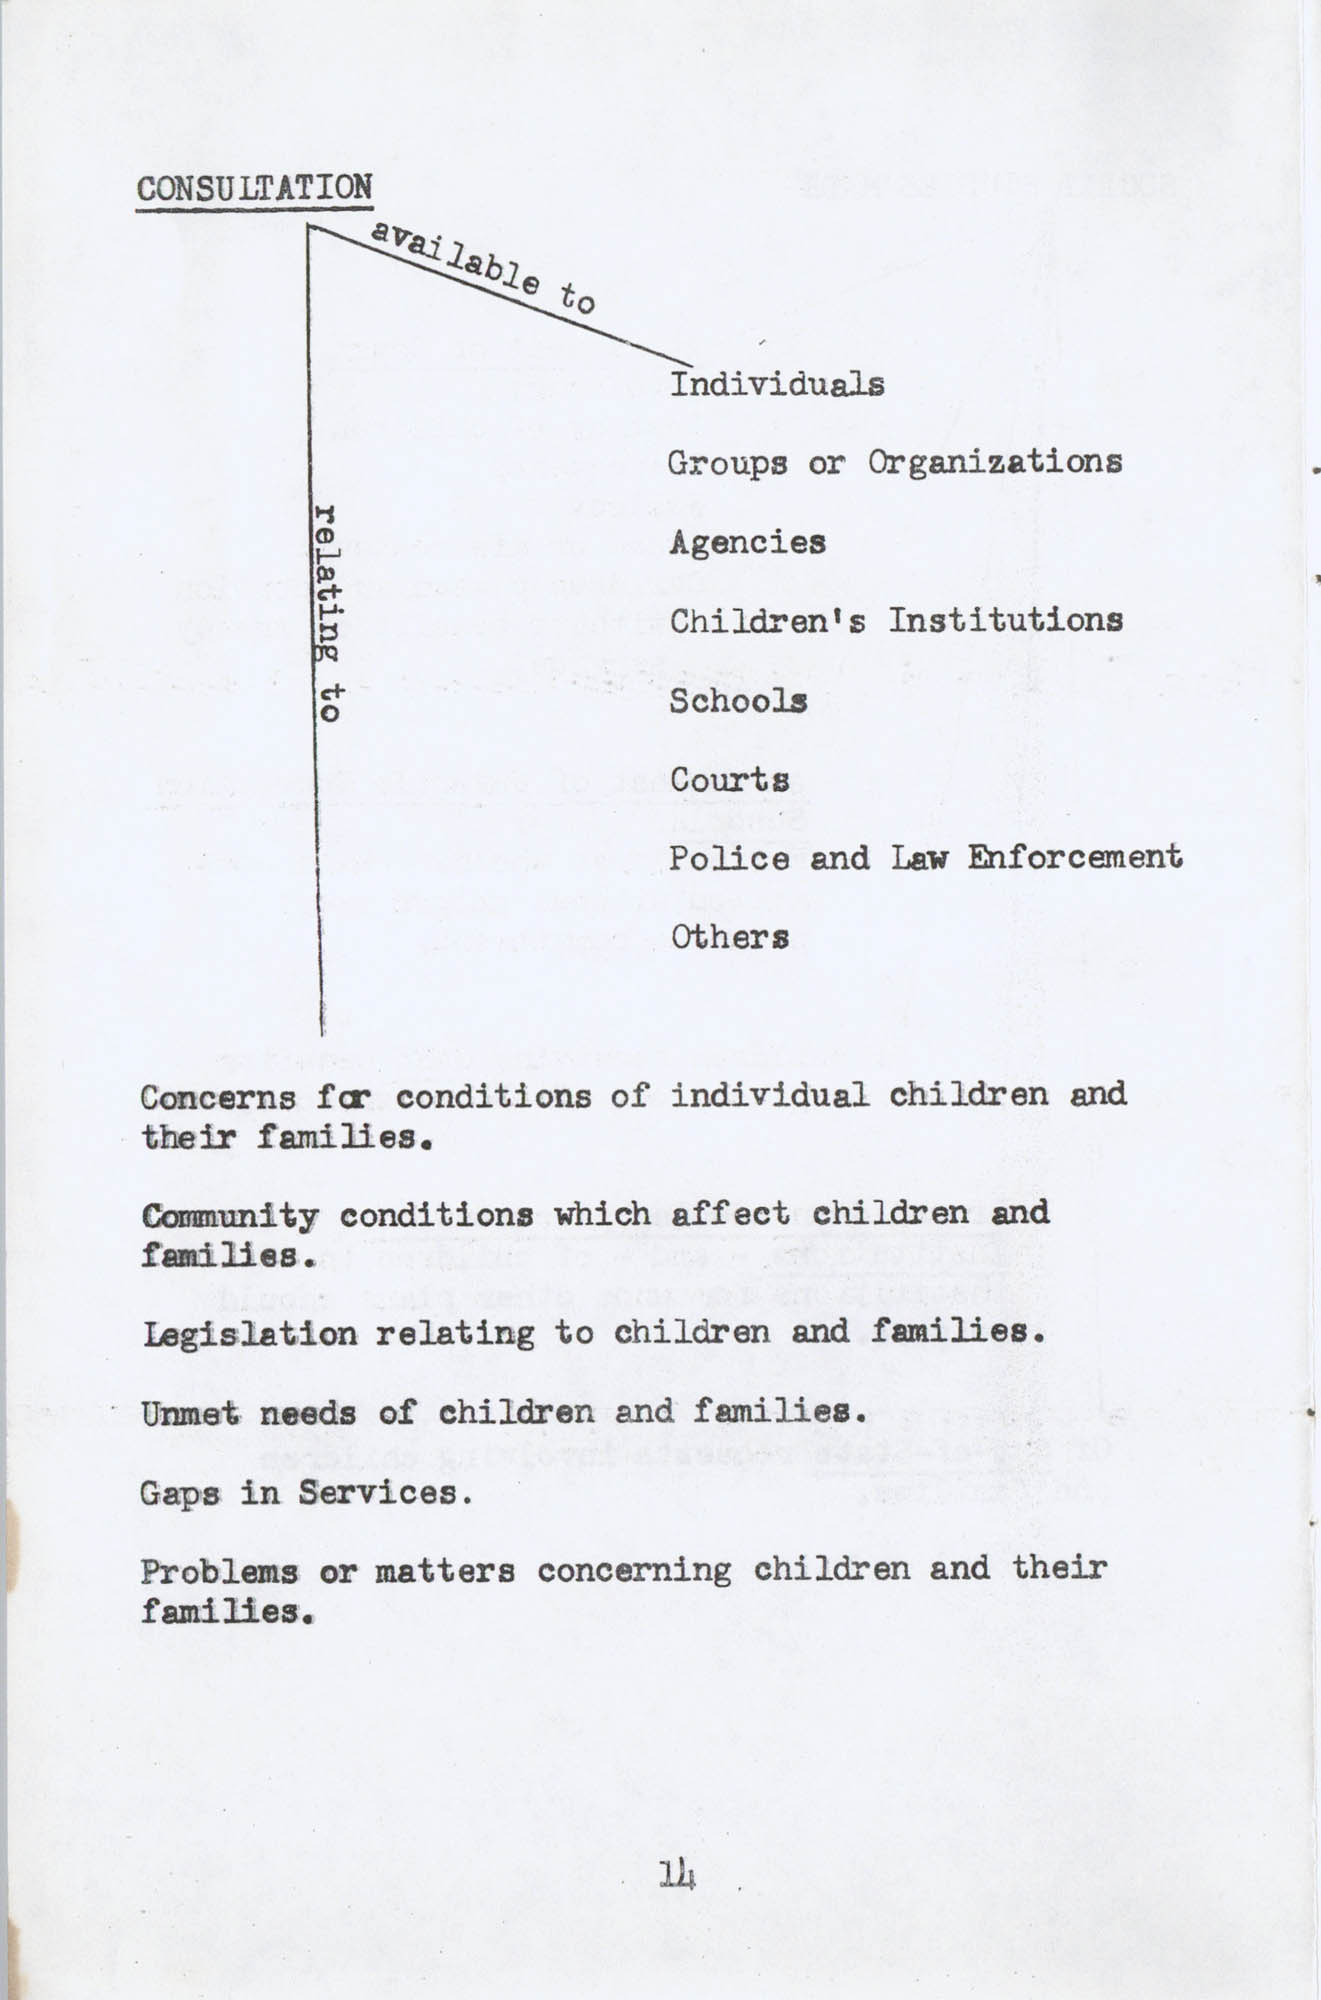 Social Services for Children and Families with Children, Page 14